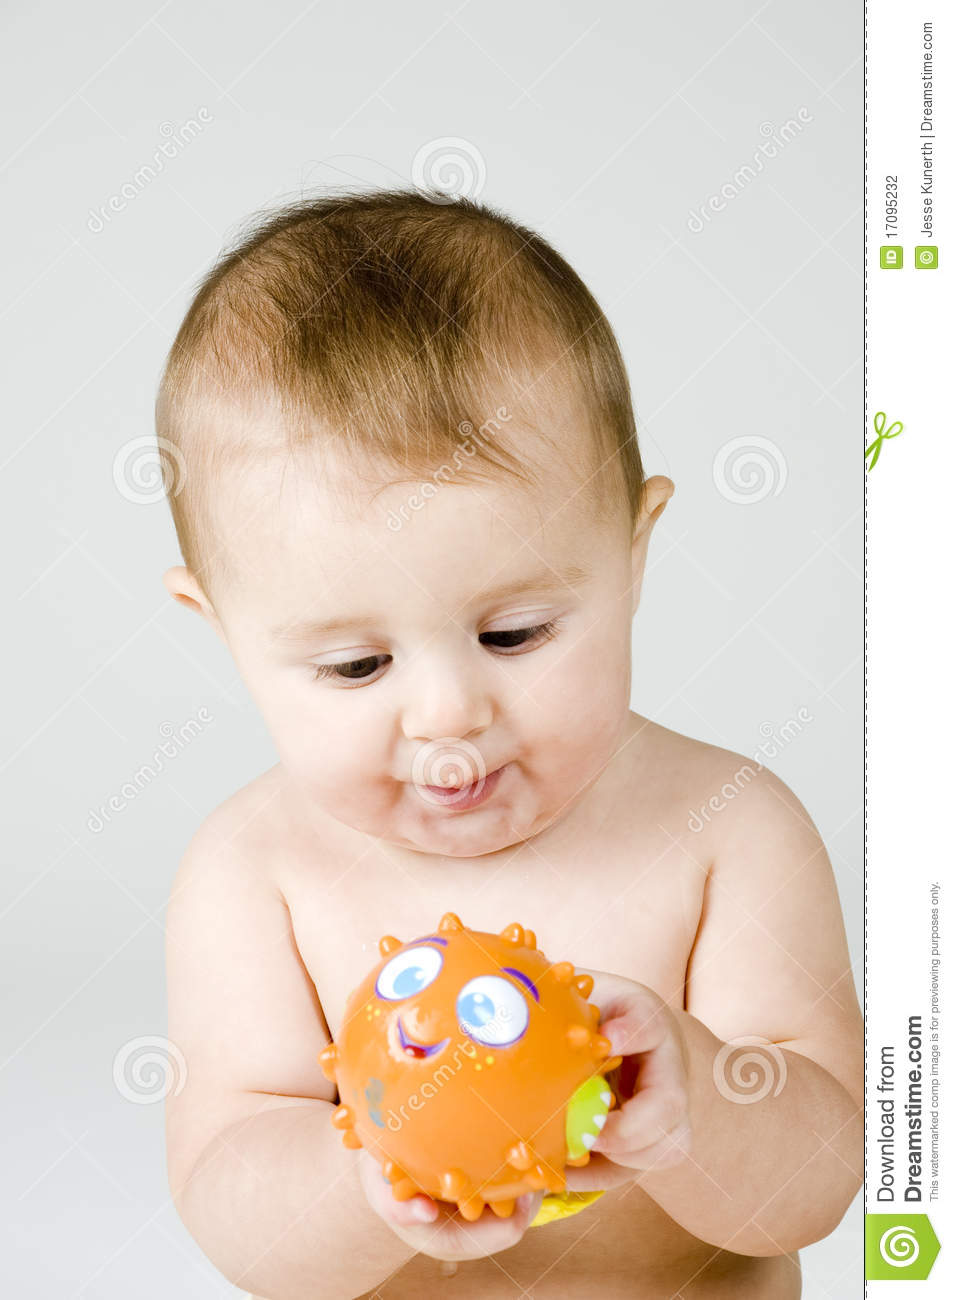 Cute Baby With Fish Toy Stock Photo Image Of Playing